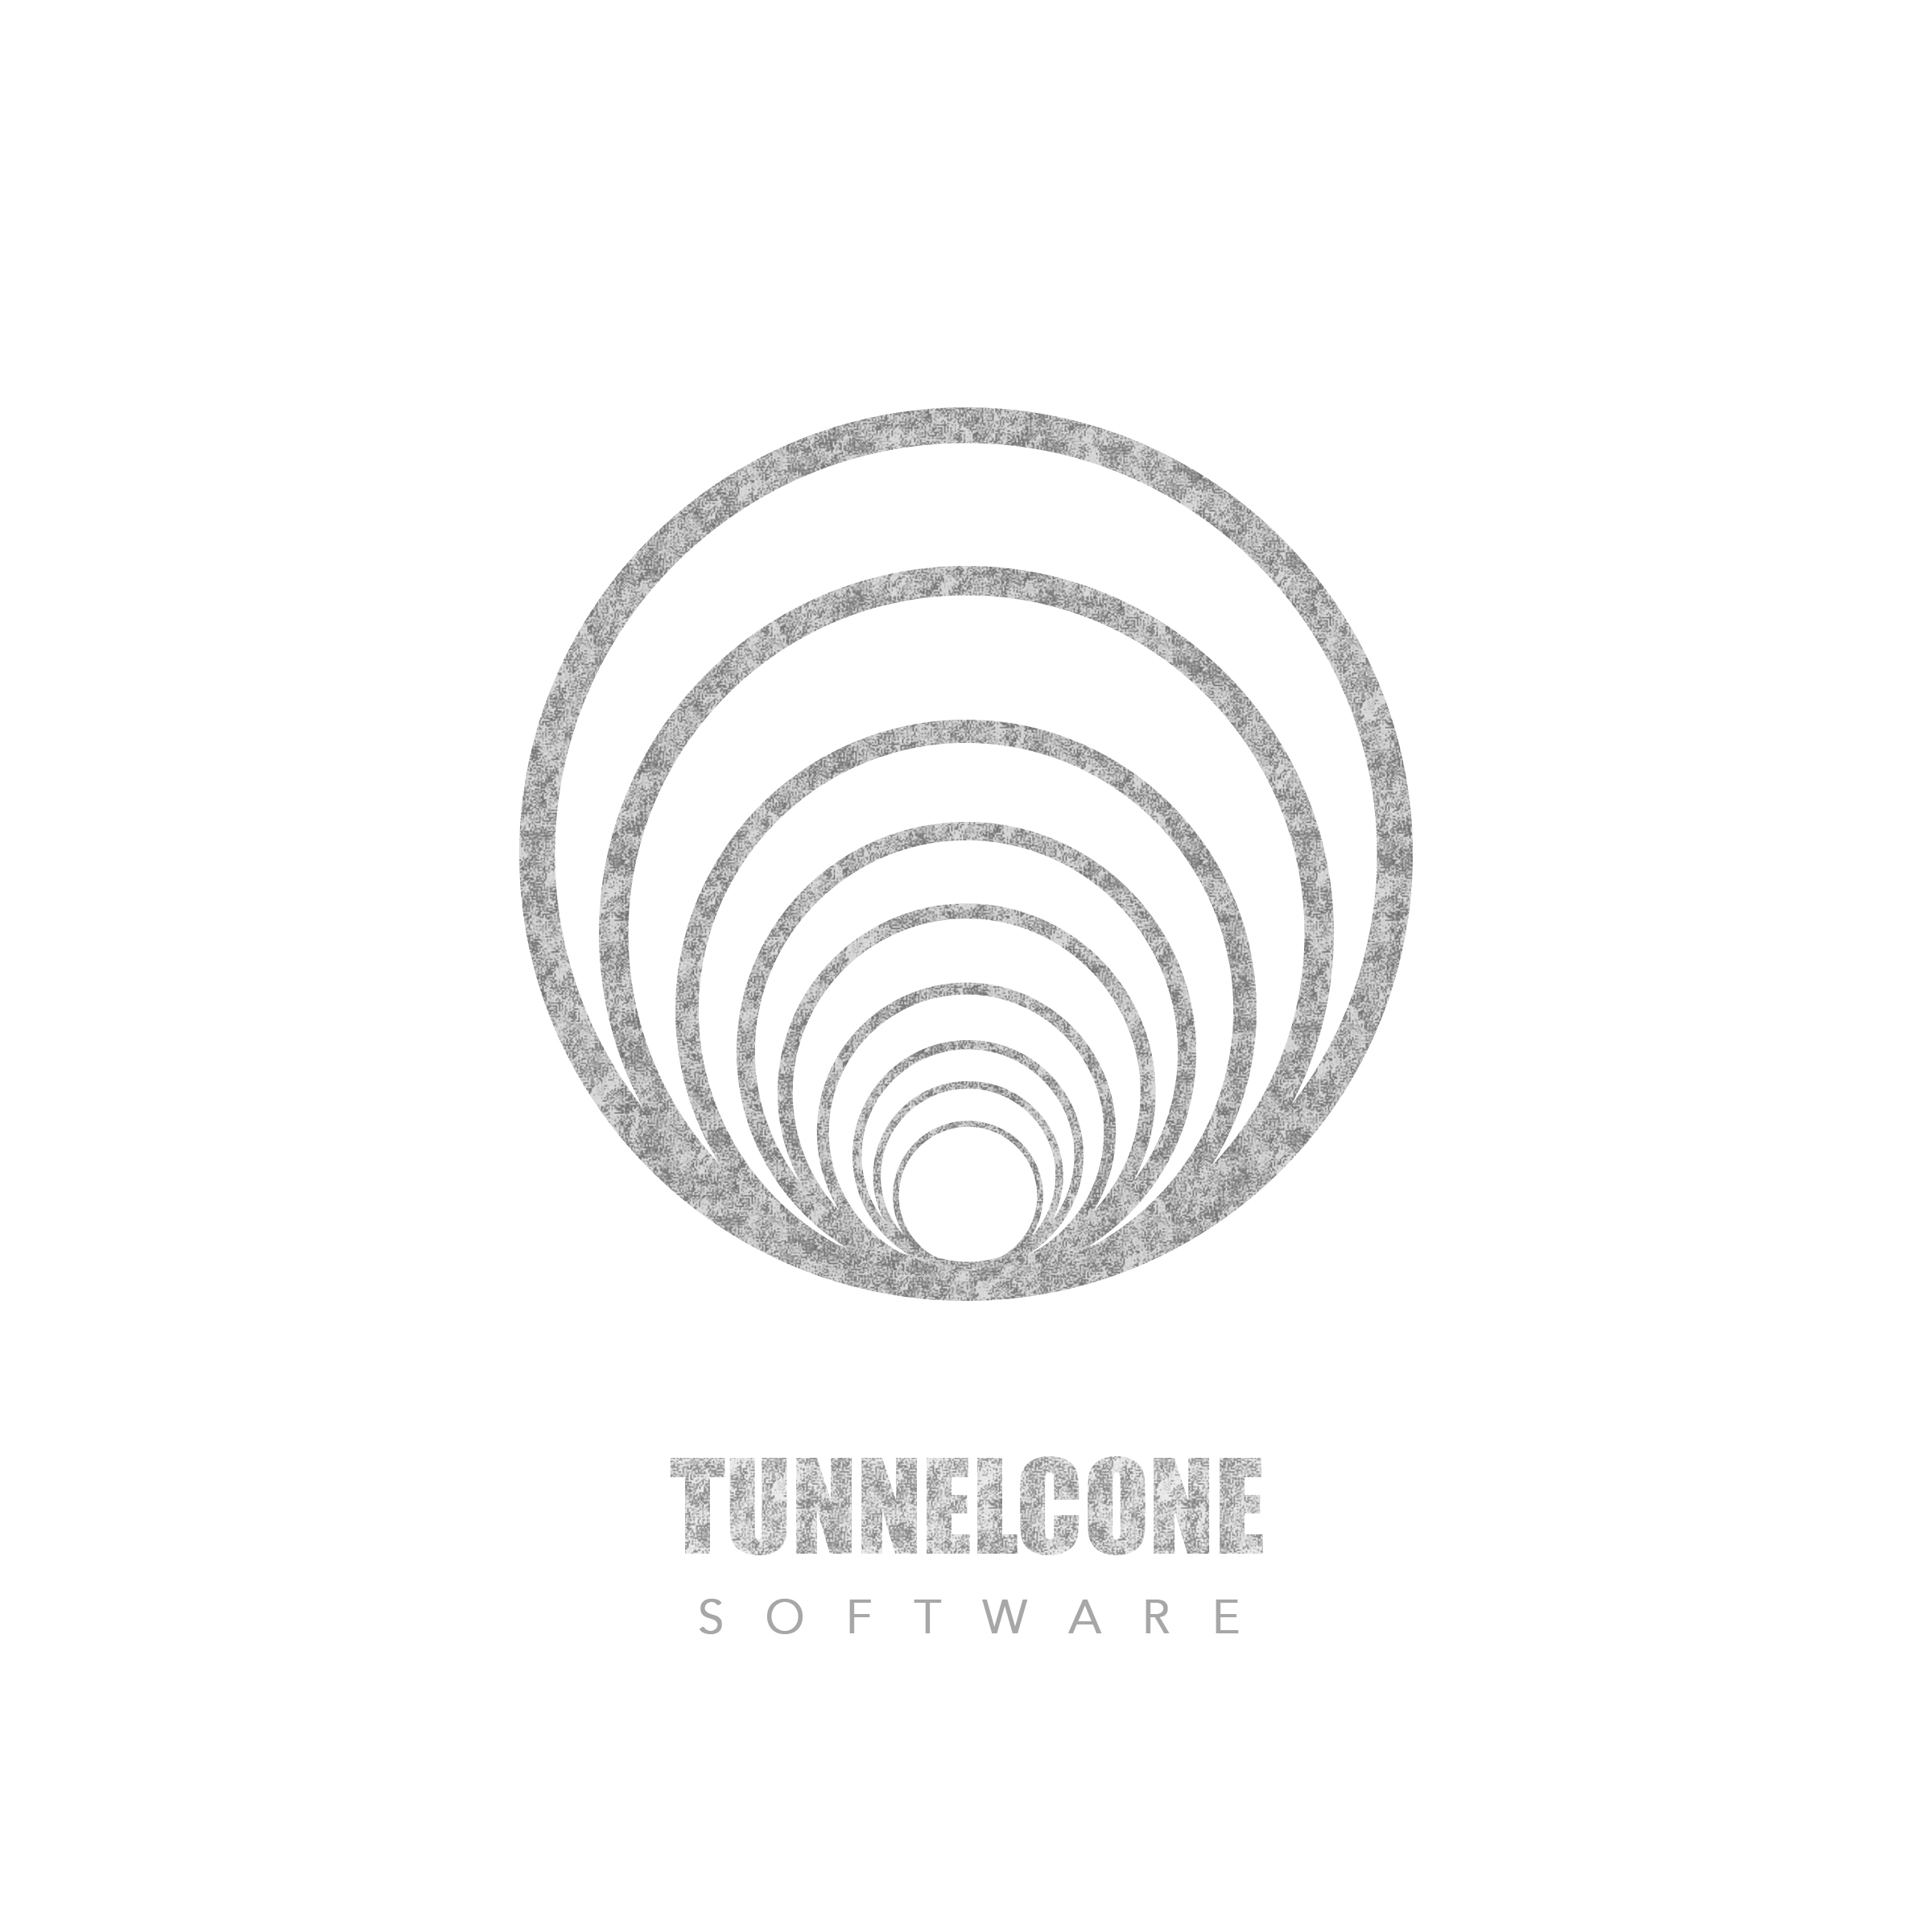 Tunnelcone